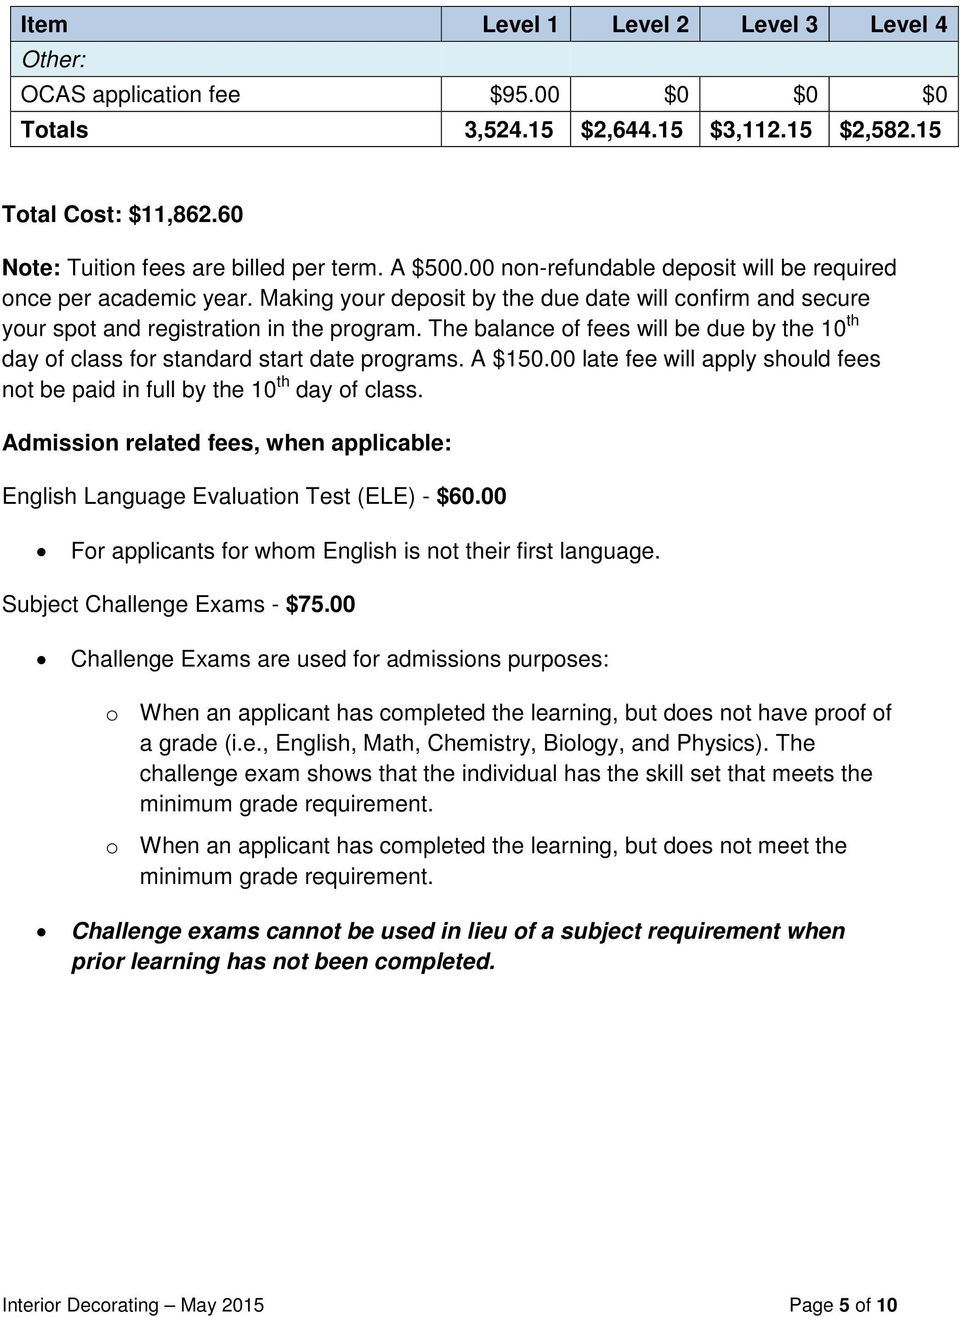 The balance of fees will be due by the 10 th day of class for standard start date programs. A $150.00 late fee will apply should fees not be paid in full by the 10 th day of class.